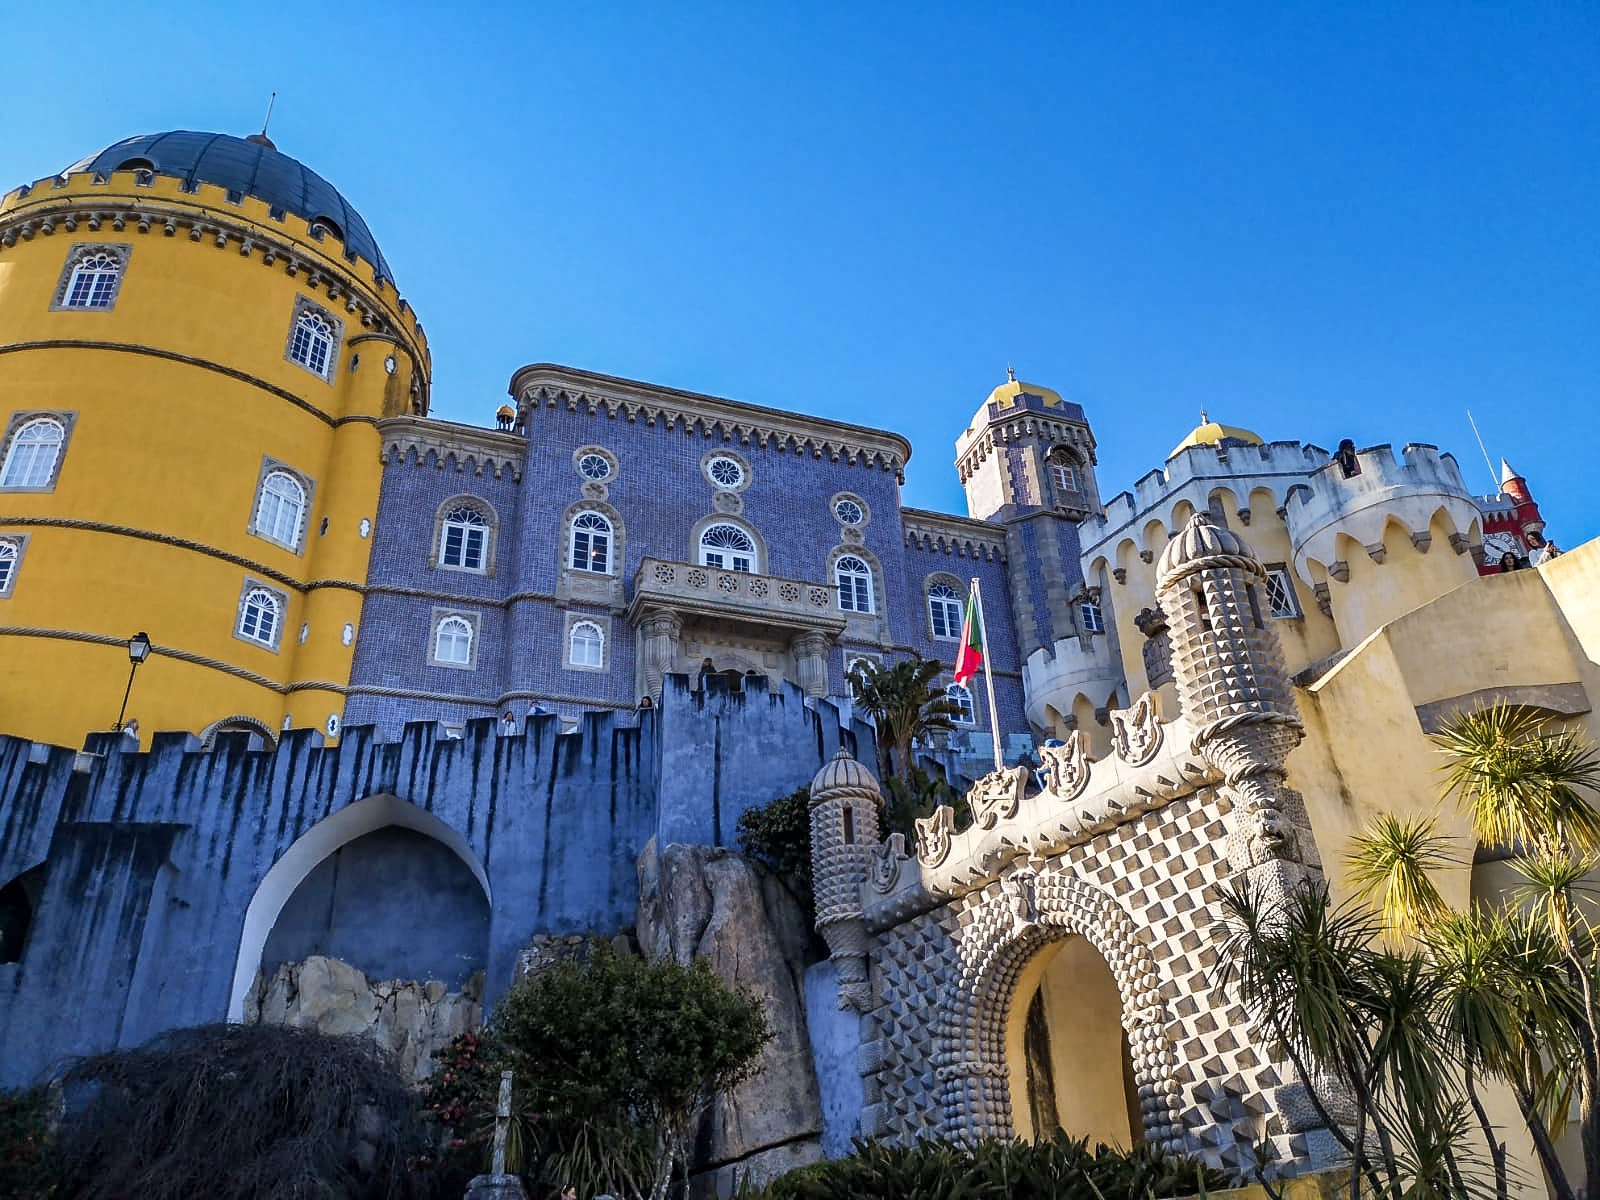 redhead-round-the-world-blog-blogger-portugal-europe-sintra-pena-palace-castle.JPG